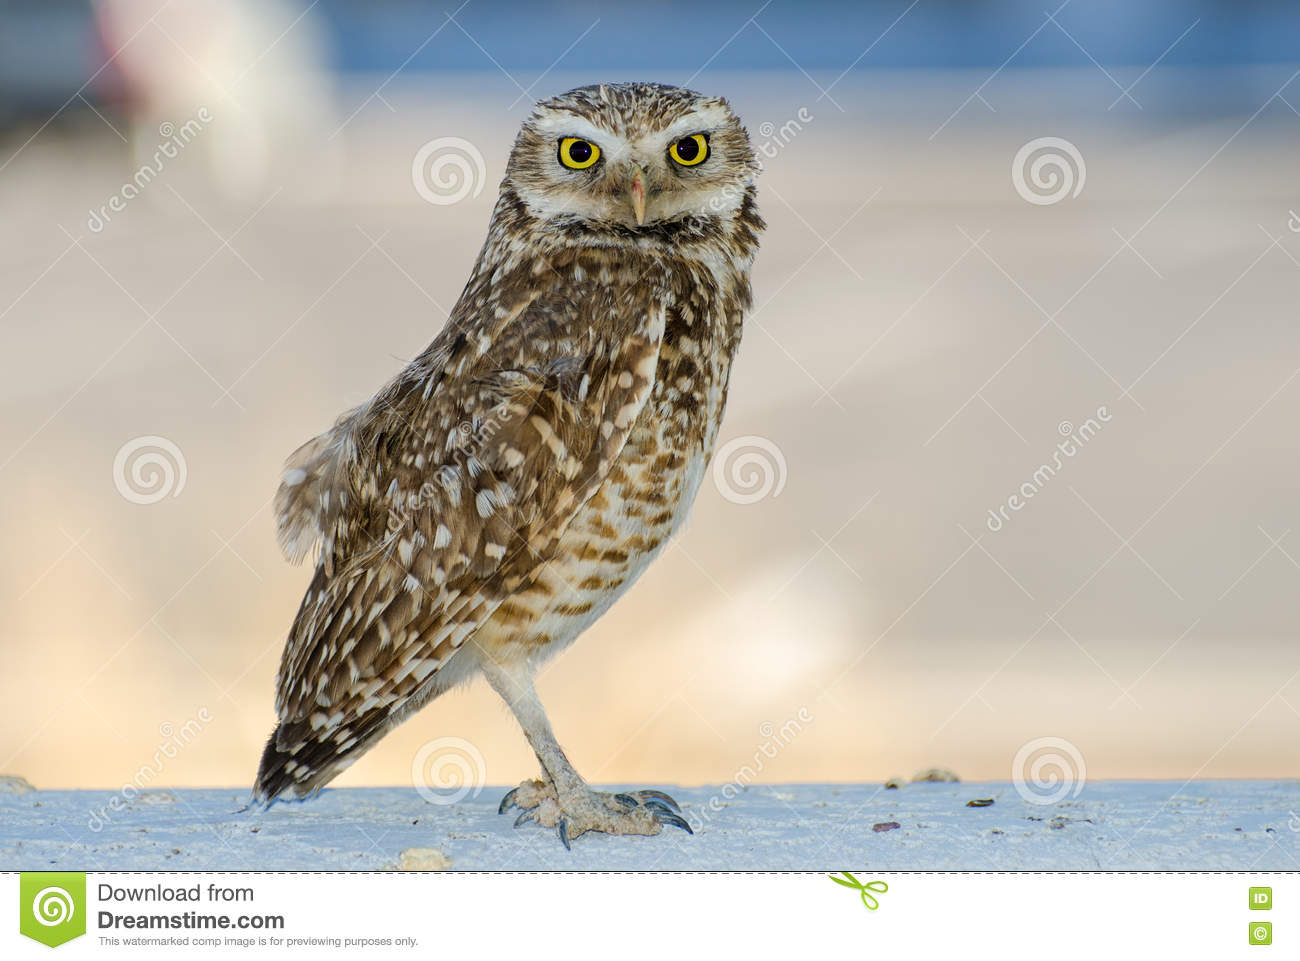 Burrowing Owl clipart #19, Download drawings